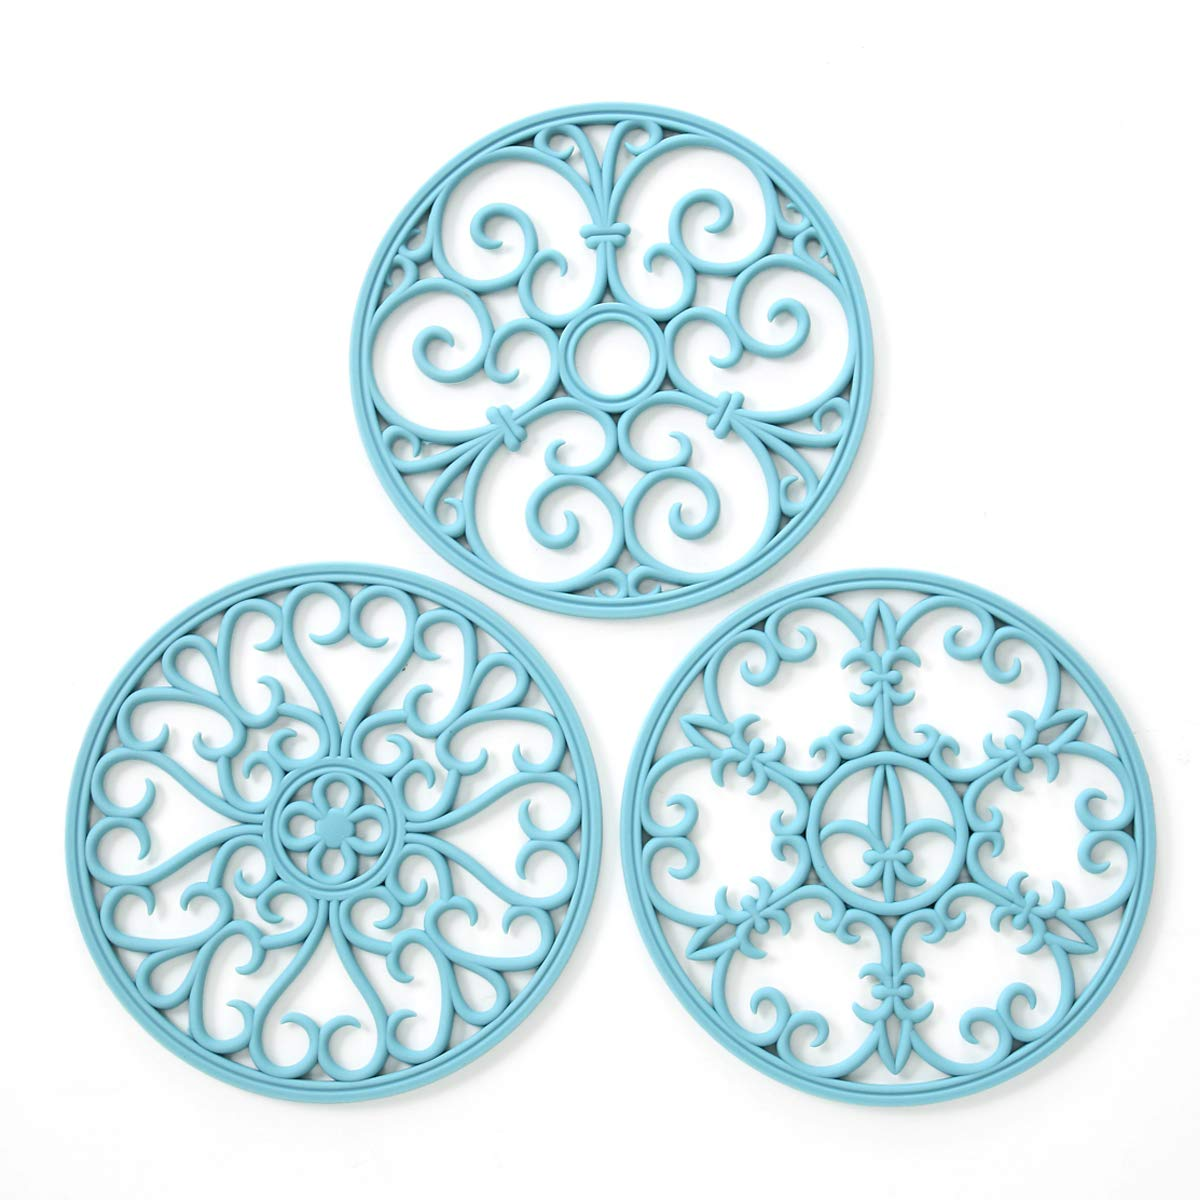 Silicone Trivet Mat - Non-Slip & Heat Resistant Kitchen Hot Pads for Countertops & Table - Kitchen Trivets for Hot Dishes & Cookware - Hot Pot Holder for Pots & Pans - Turquoise,Set of 3